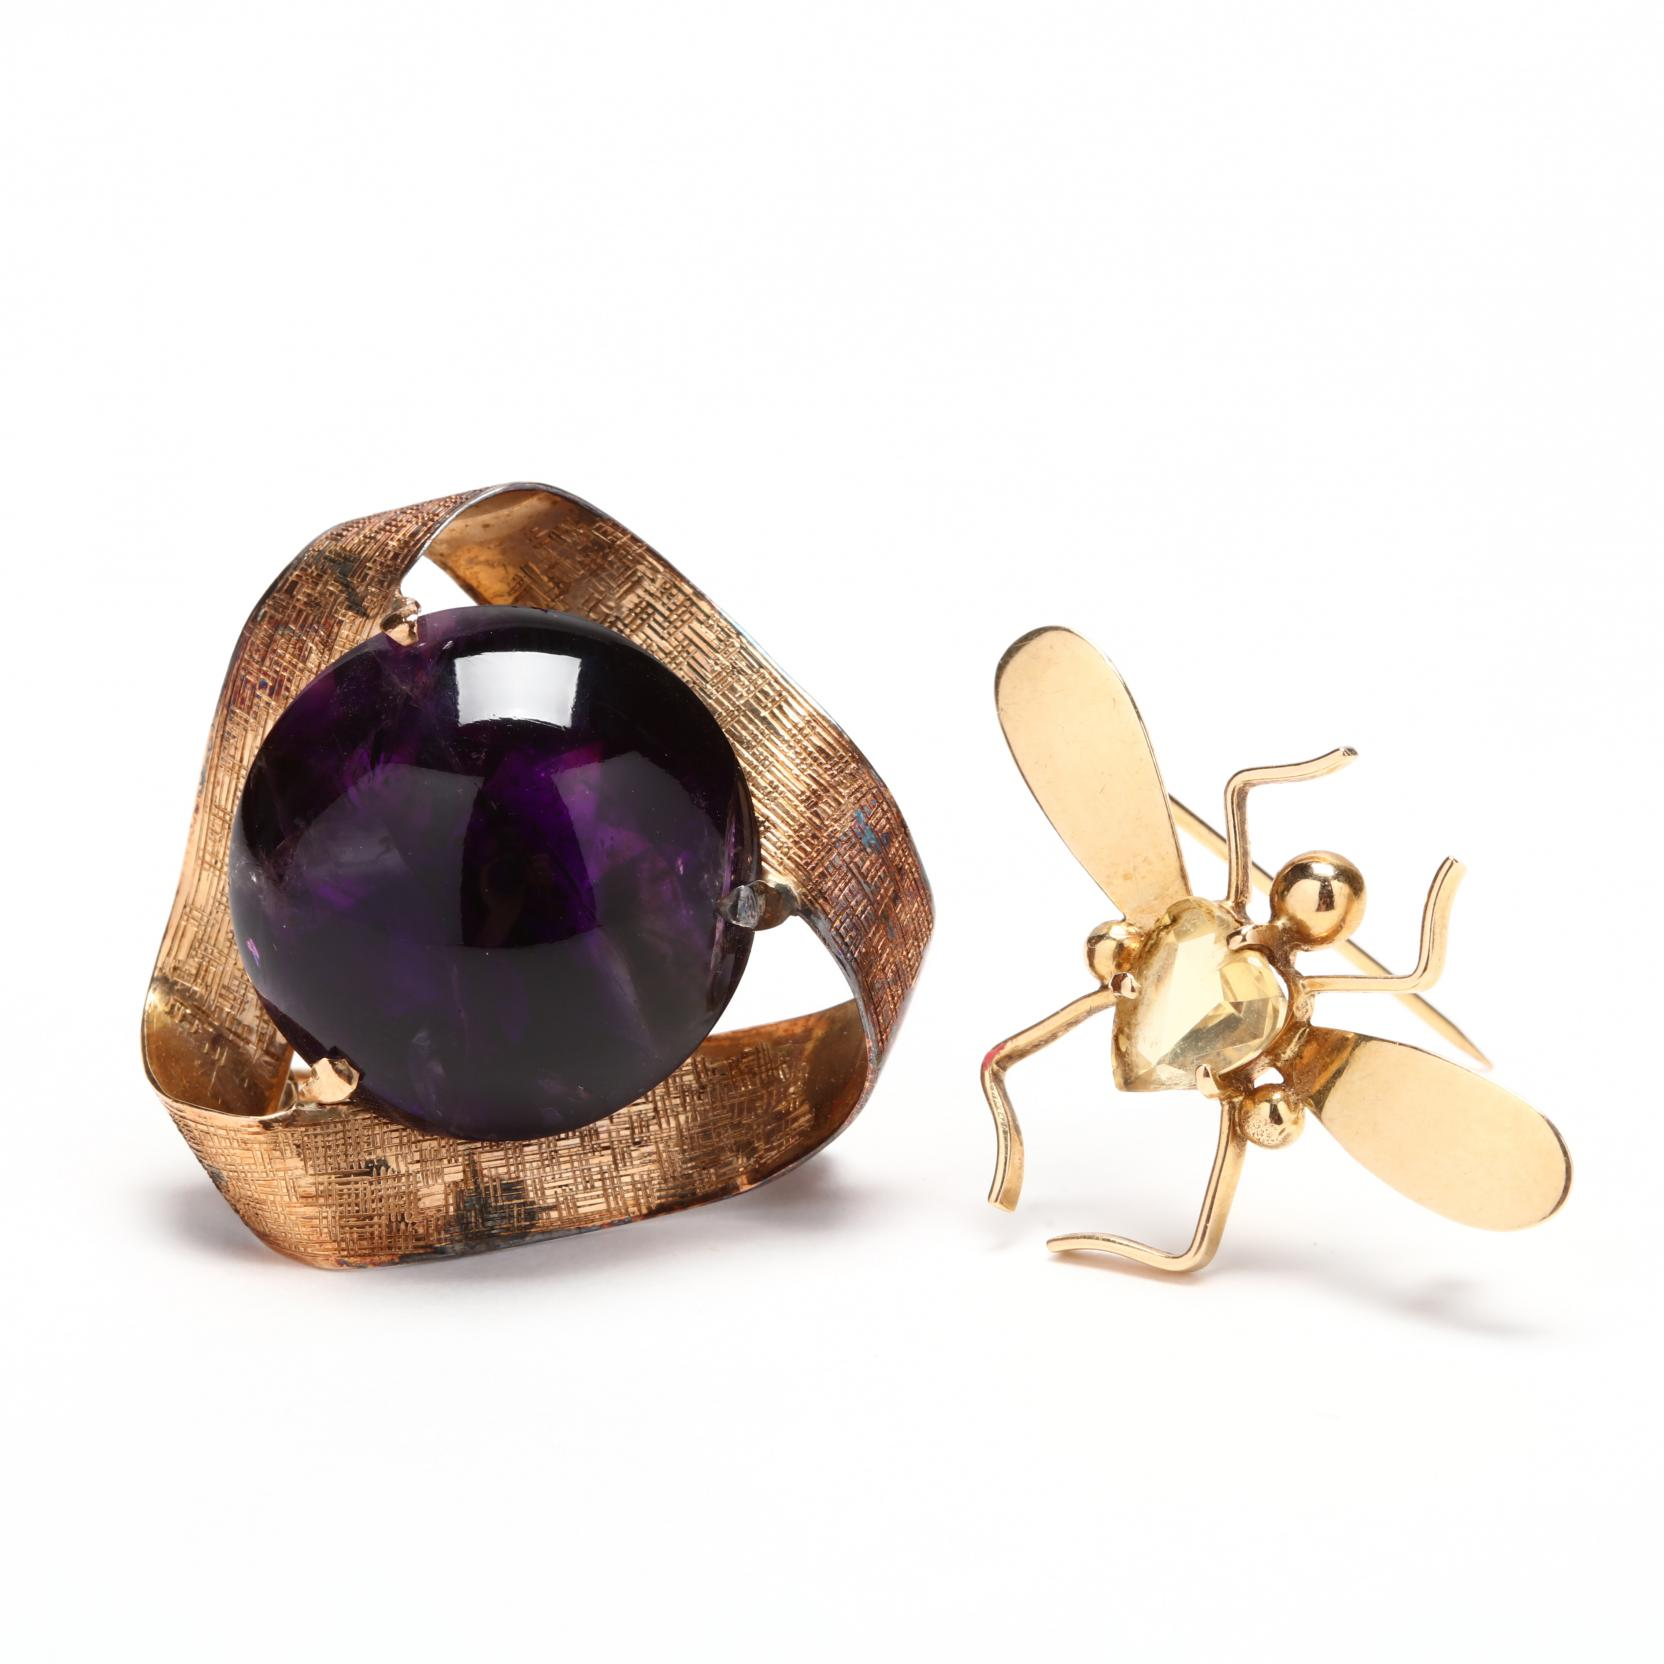 14kt-gold-amethyst-brooch-and-a-tiffany-co-14kt-gold-and-citrine-bug-brooch